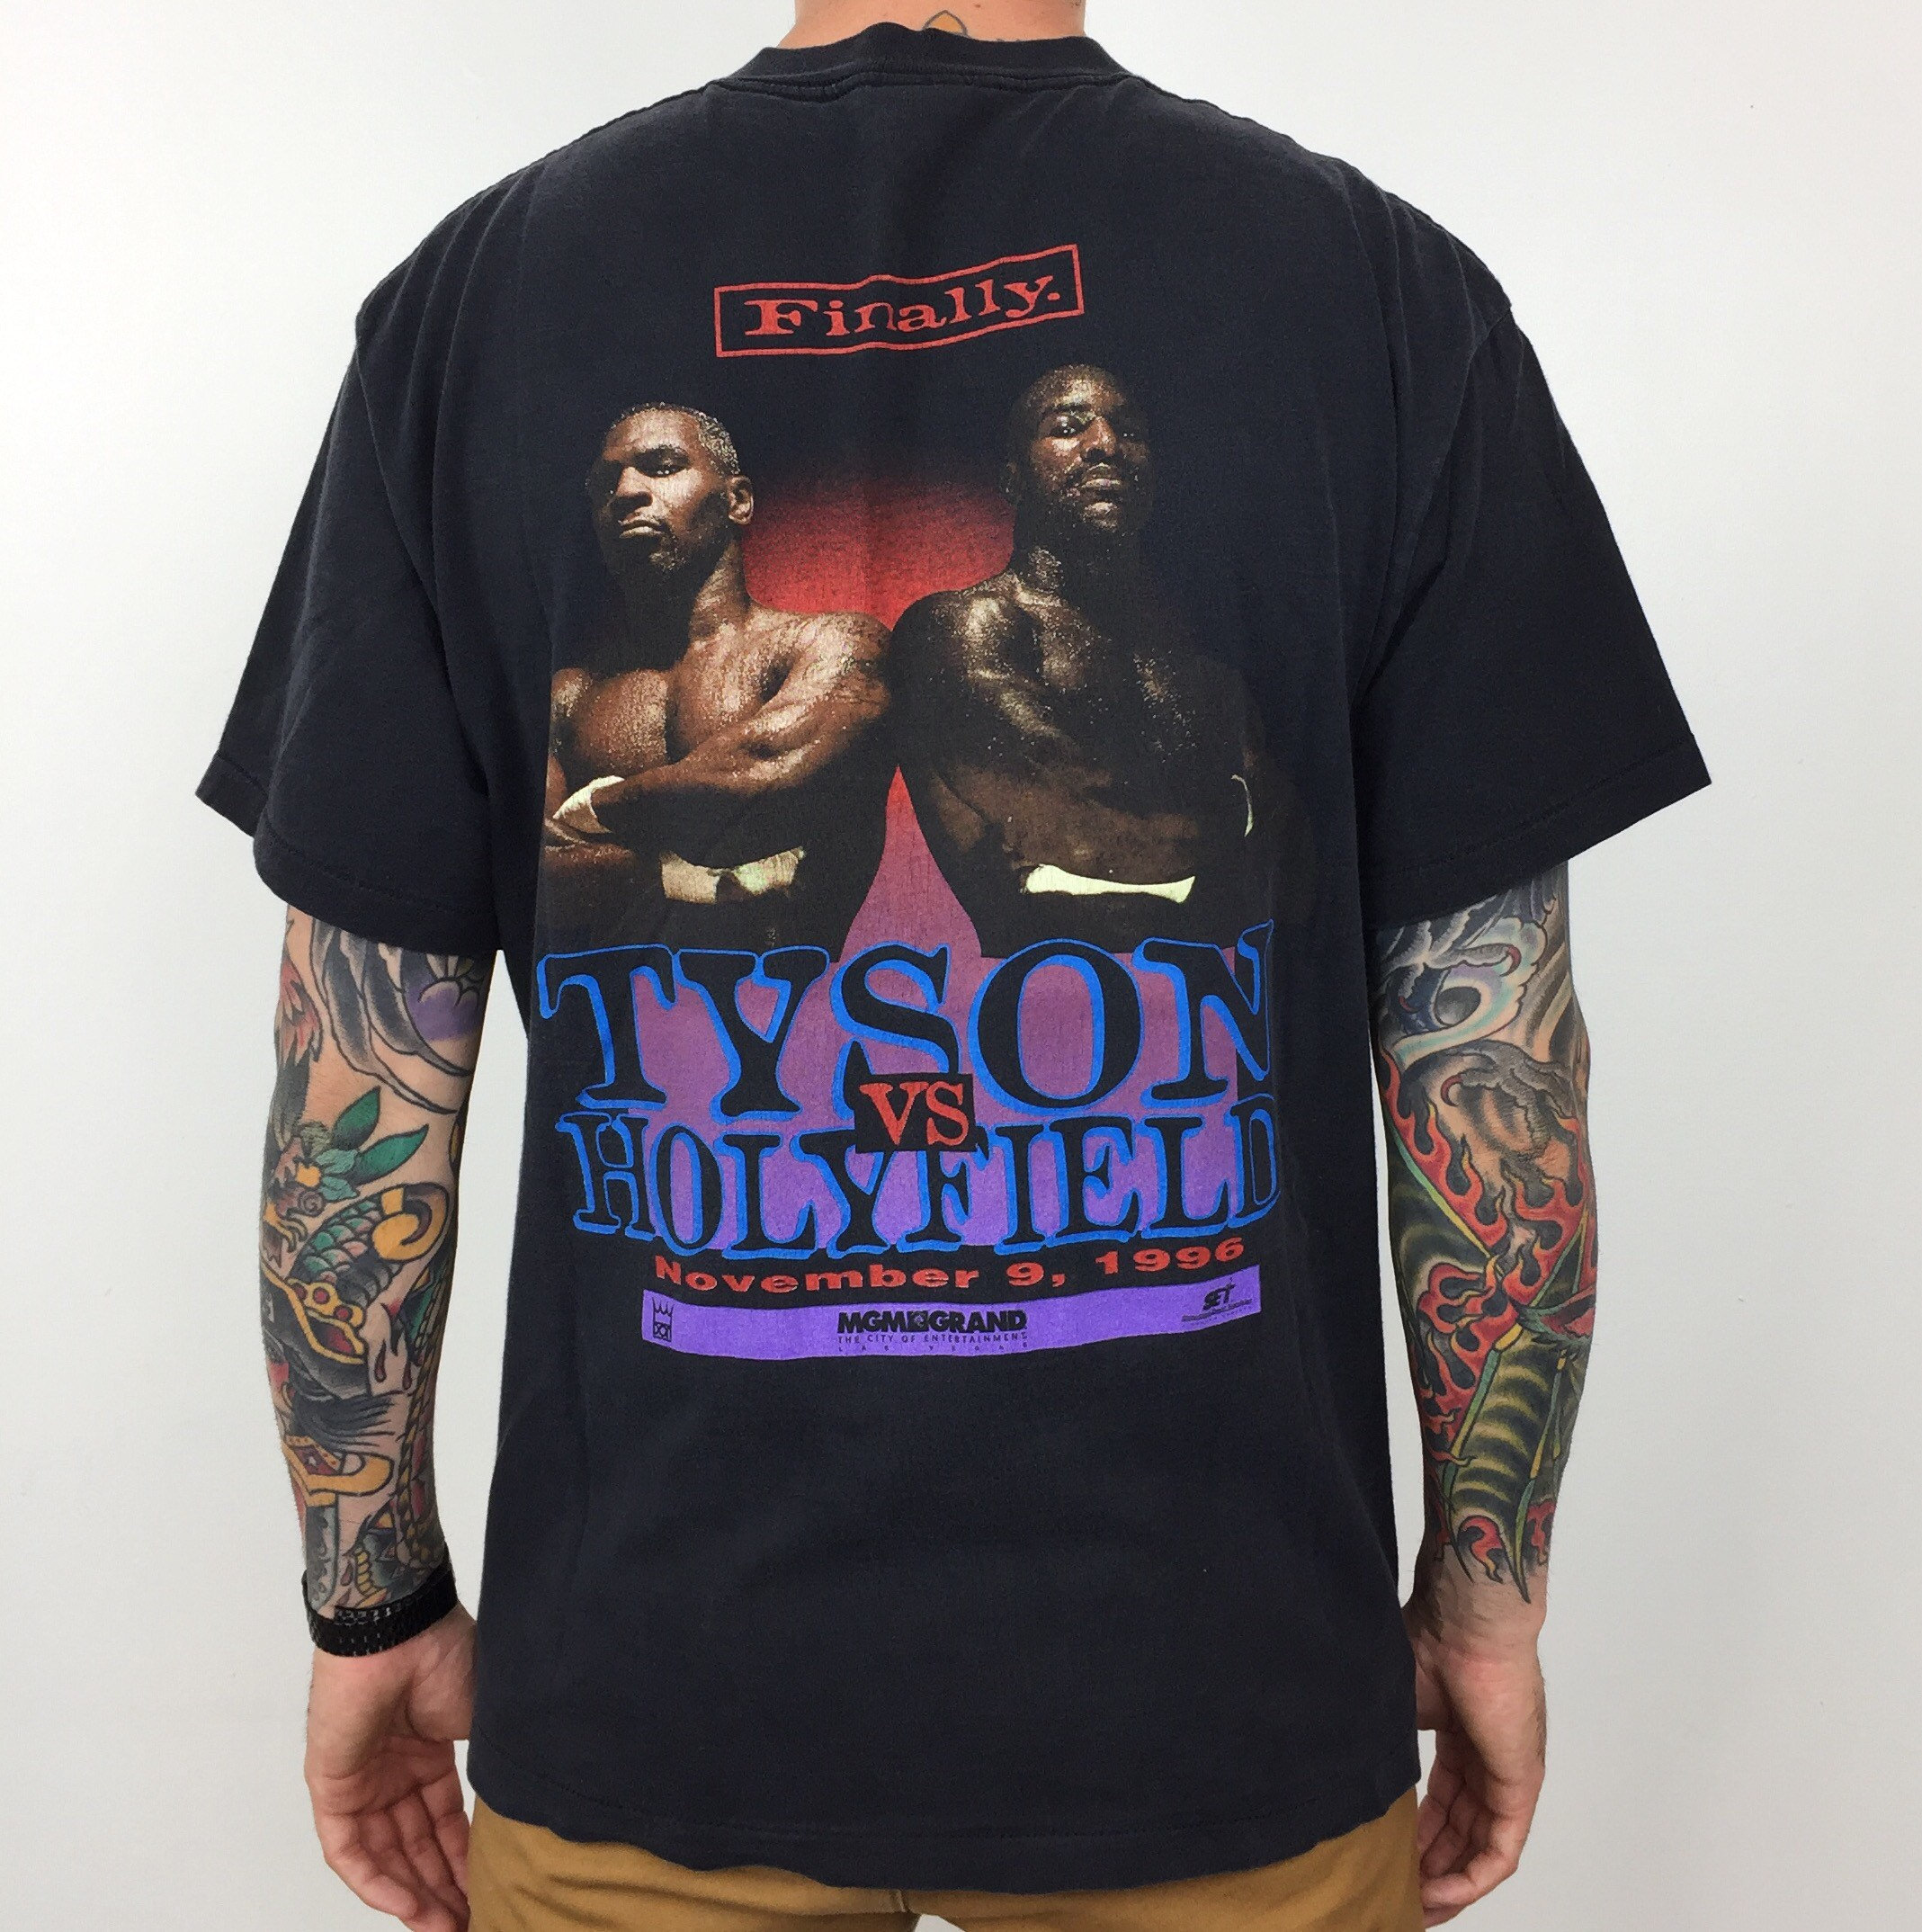 68911e82 Rare Vintage 90s 1996 96 Mike Tyson vs Evander Holyfield Finally boxing  match MGM Grand Las Vegas graphic tee t-shirt shirt - Size L